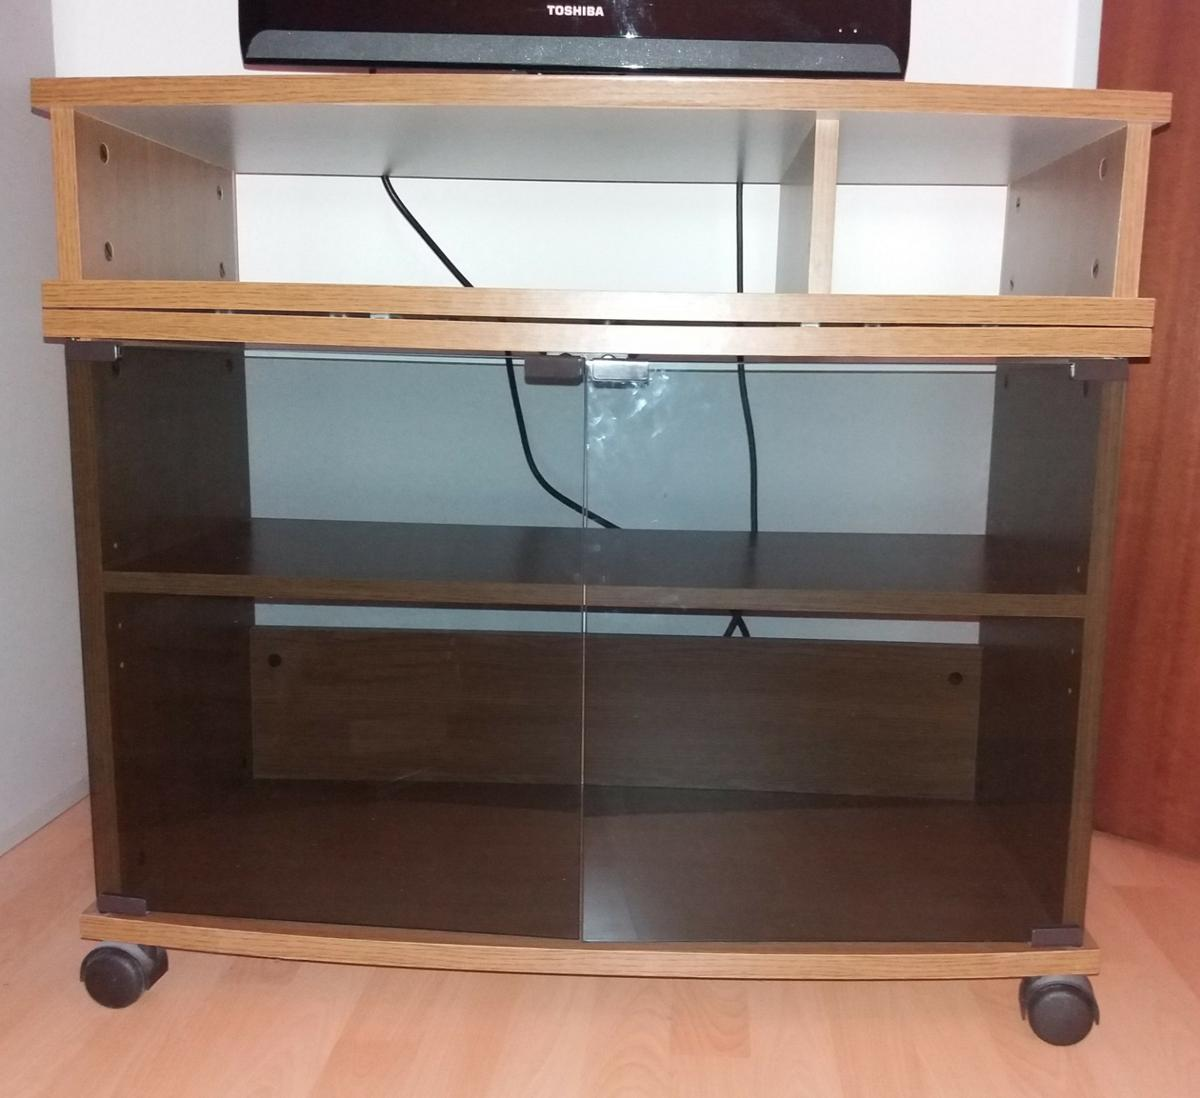 Tv Schrank Mit Glasturen In 37077 Gottinga For 30 00 For Sale